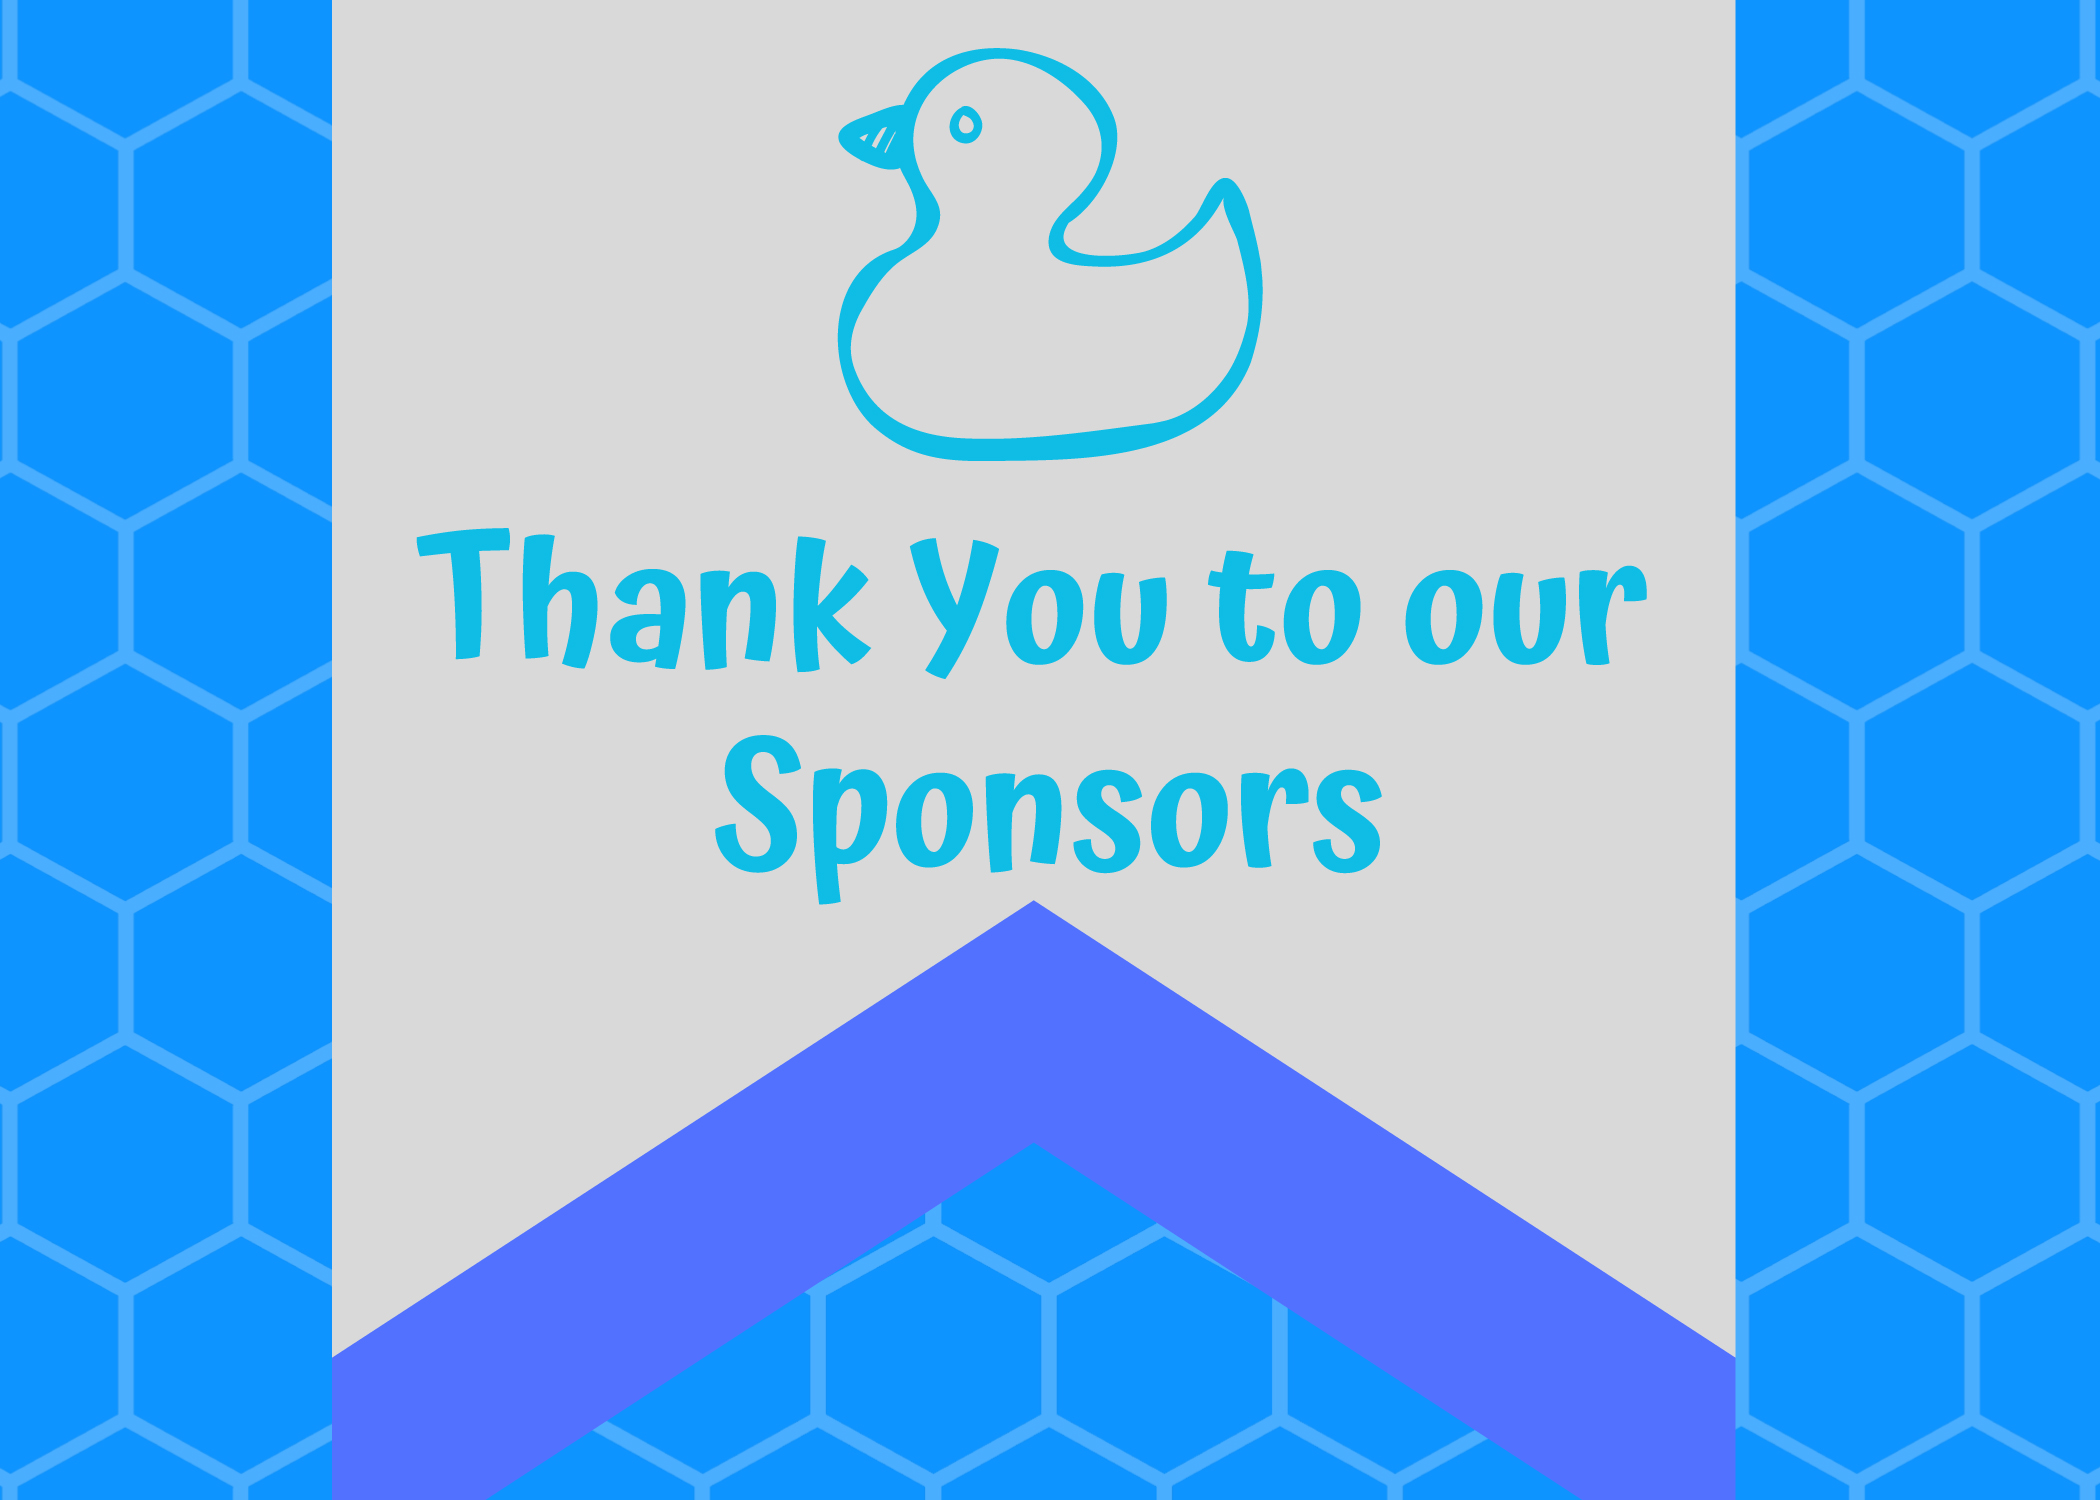 Thank You to our Sponsors (1).jpg